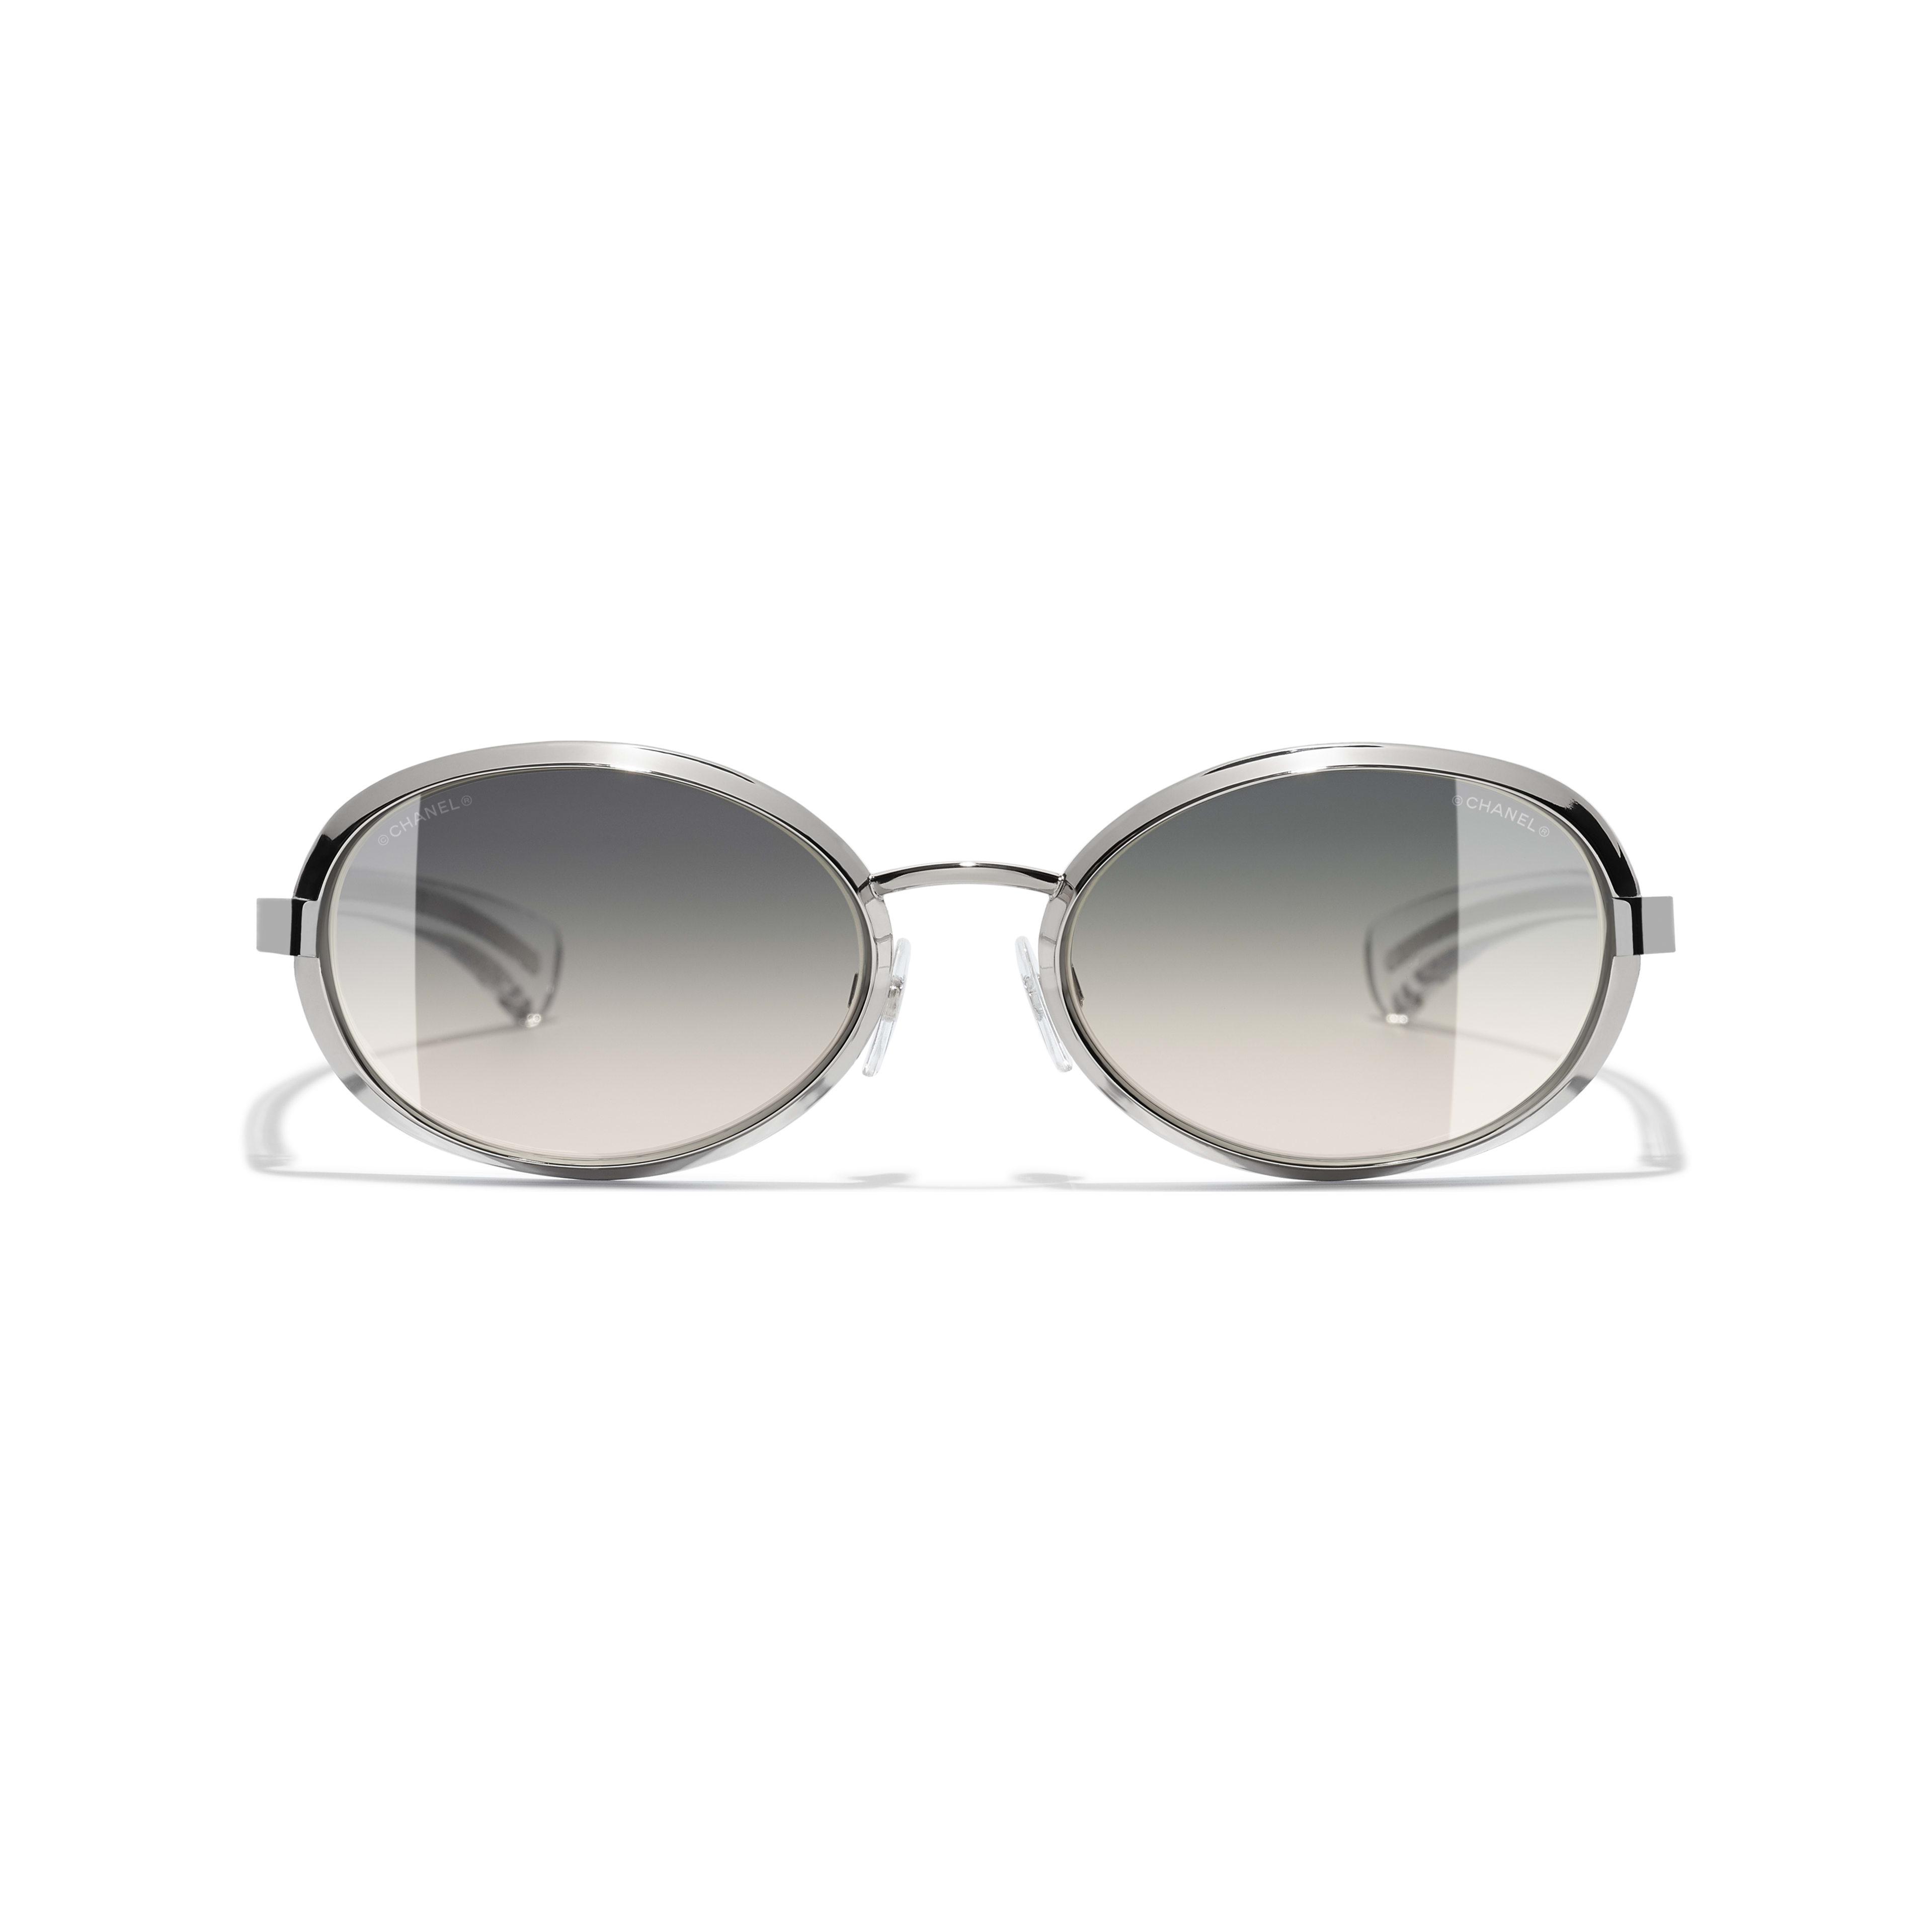 Oval Sunglasses Acetate & Metal Silver -                                                    view 2 - see full sized version